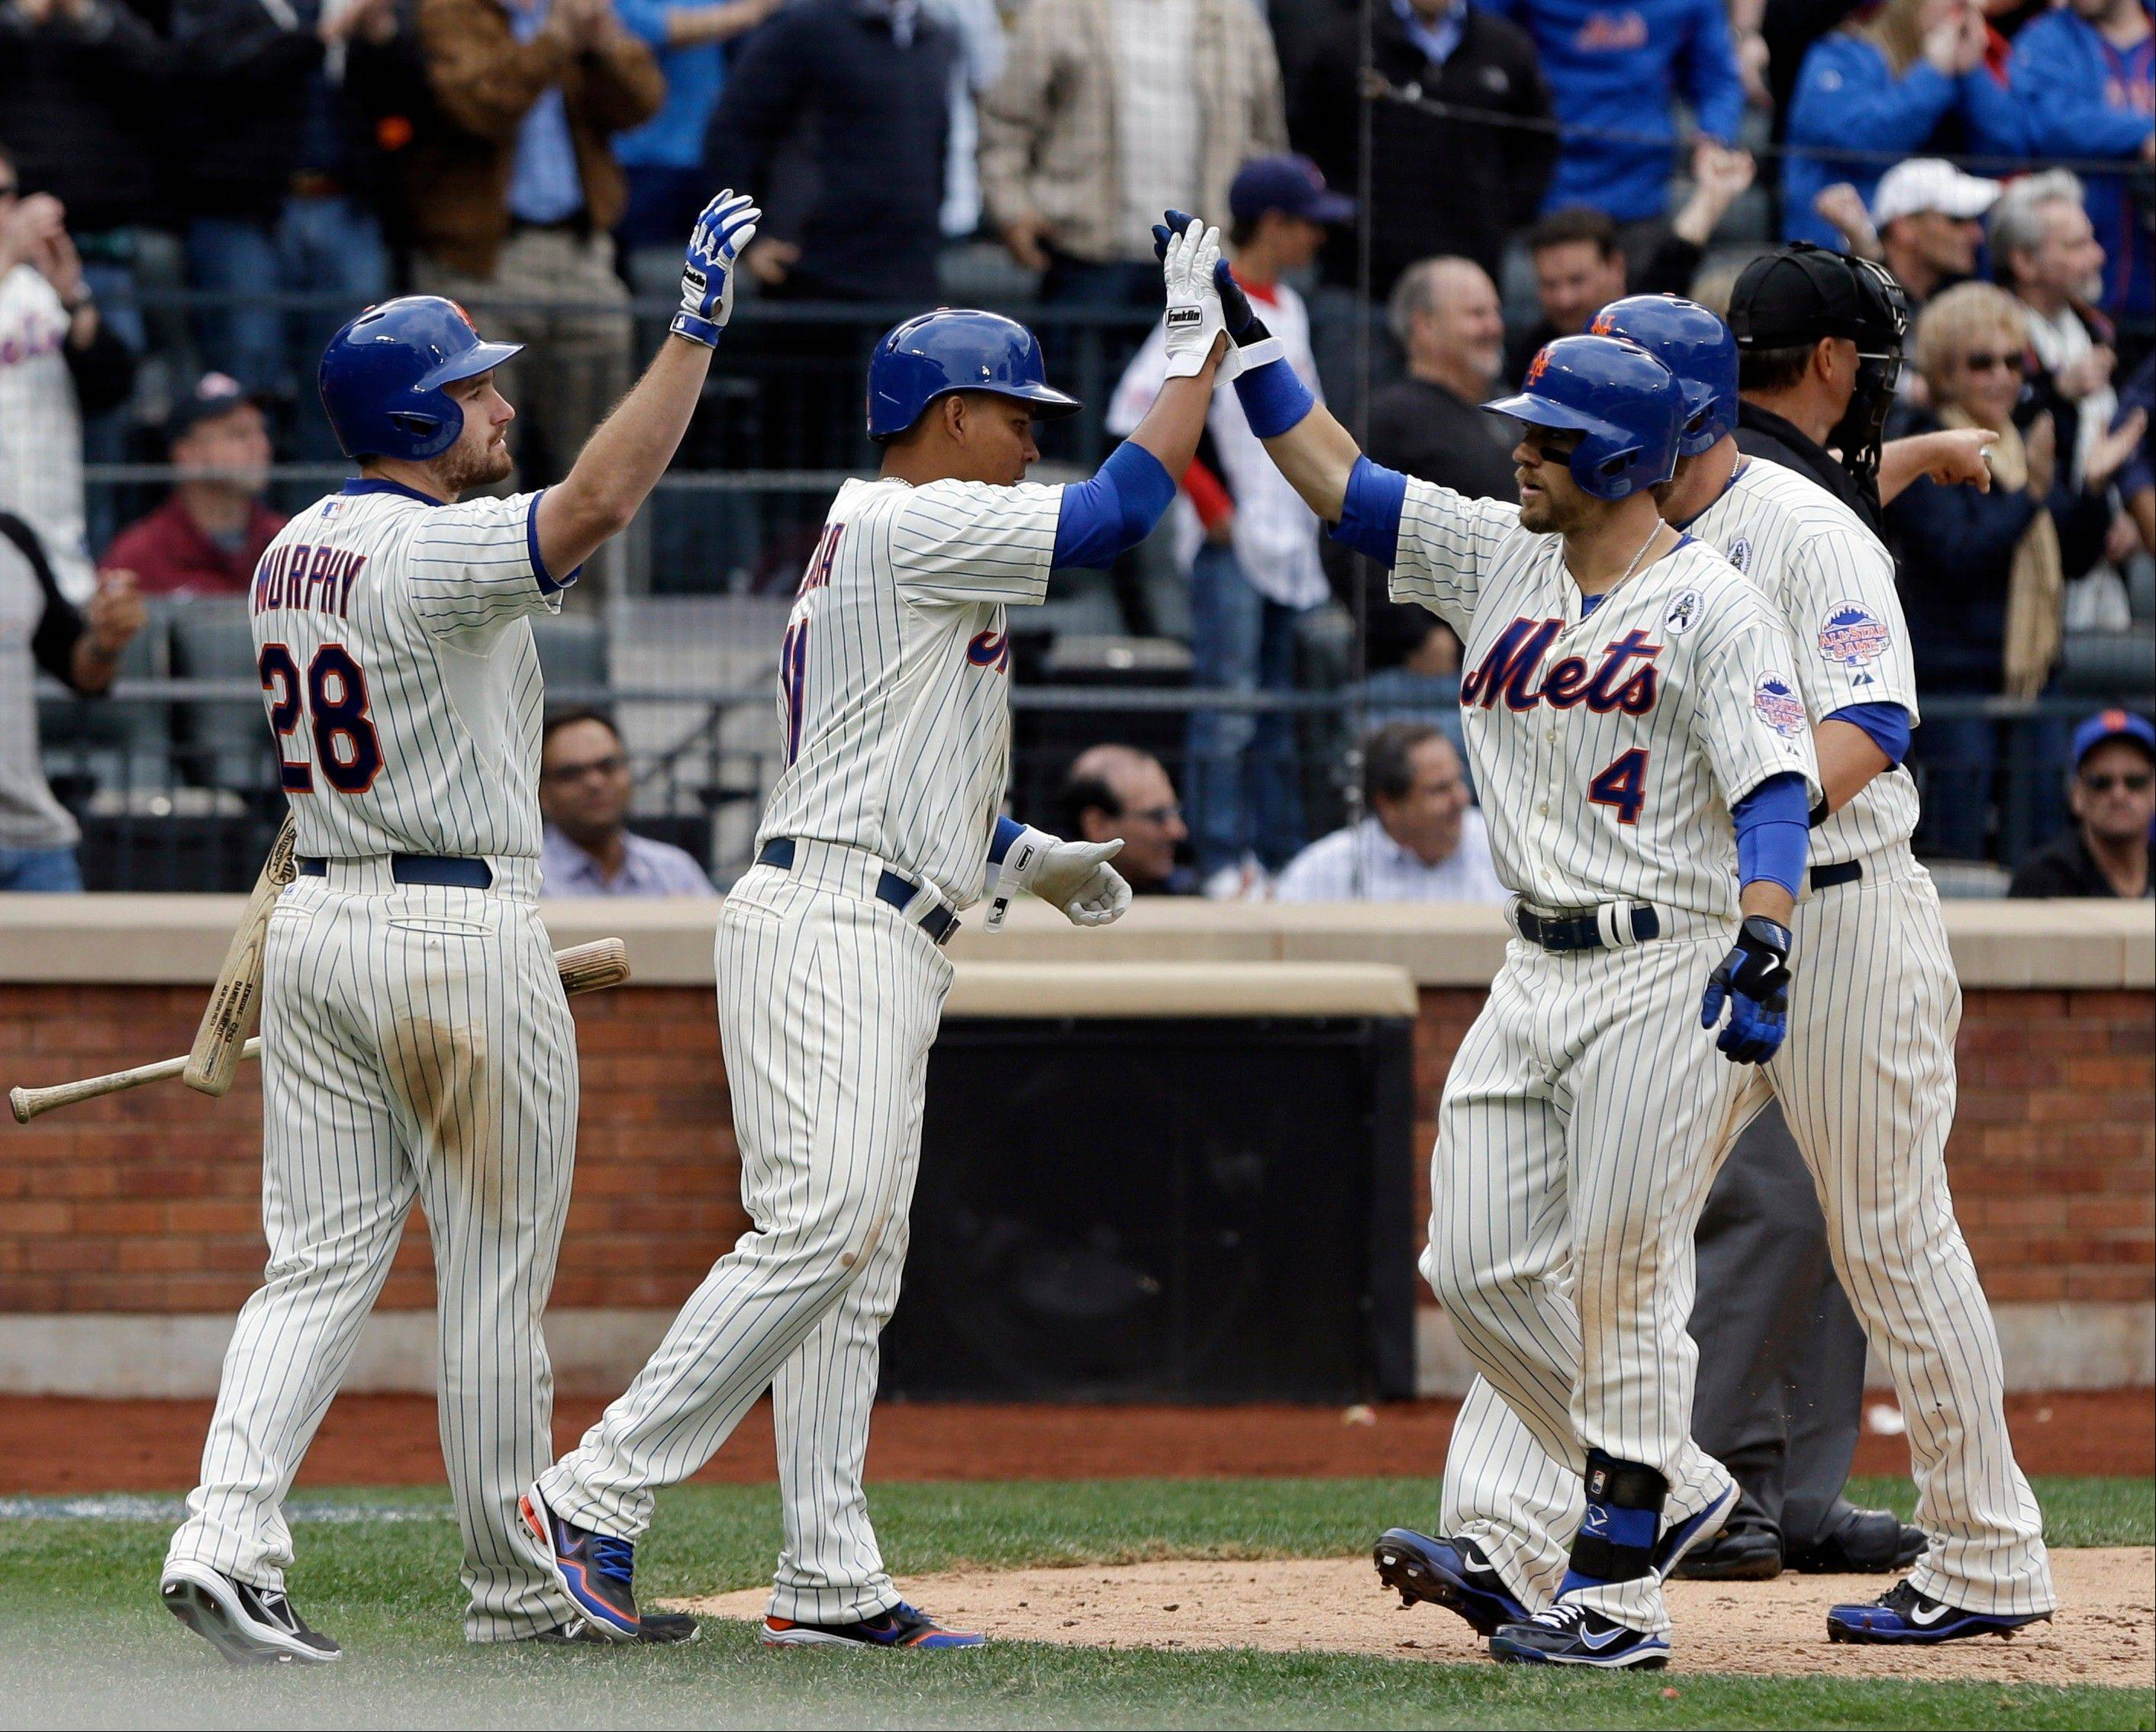 The Mets' Collin Cowgill (4) celebrates with teammates Daniel Murphy (28), Ruben Tejada, second from left, and John Buck, right, after hitting a grand slam against the Padres in the seventh inning Monday at home